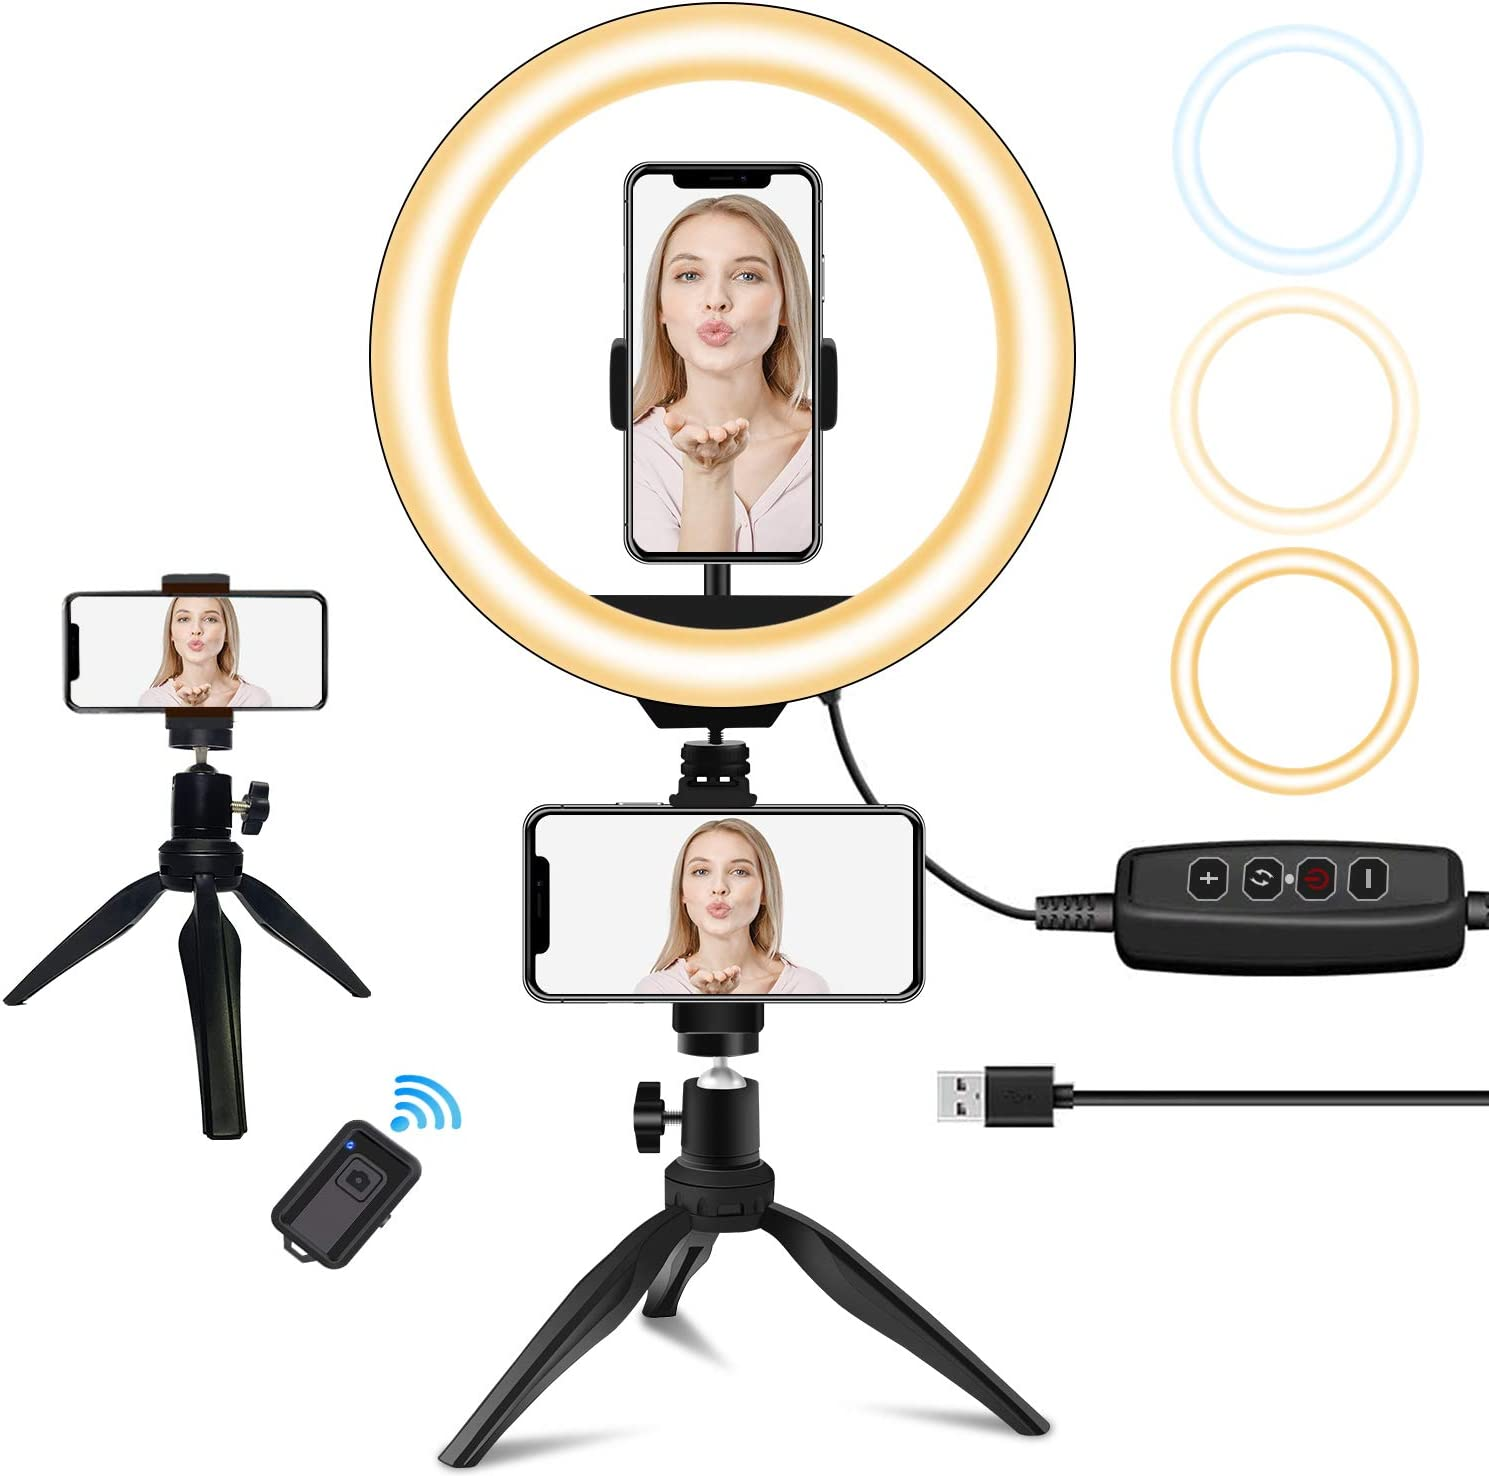 """10"""" LED Ring Light with Stand and Phone Holder, Sumcoo Dimmable Desk Selfie Ring Light for Makeup, Live Stream & YouTube Video, 3 Light Modes & 10 Brightness Level for iPhone/Android"""